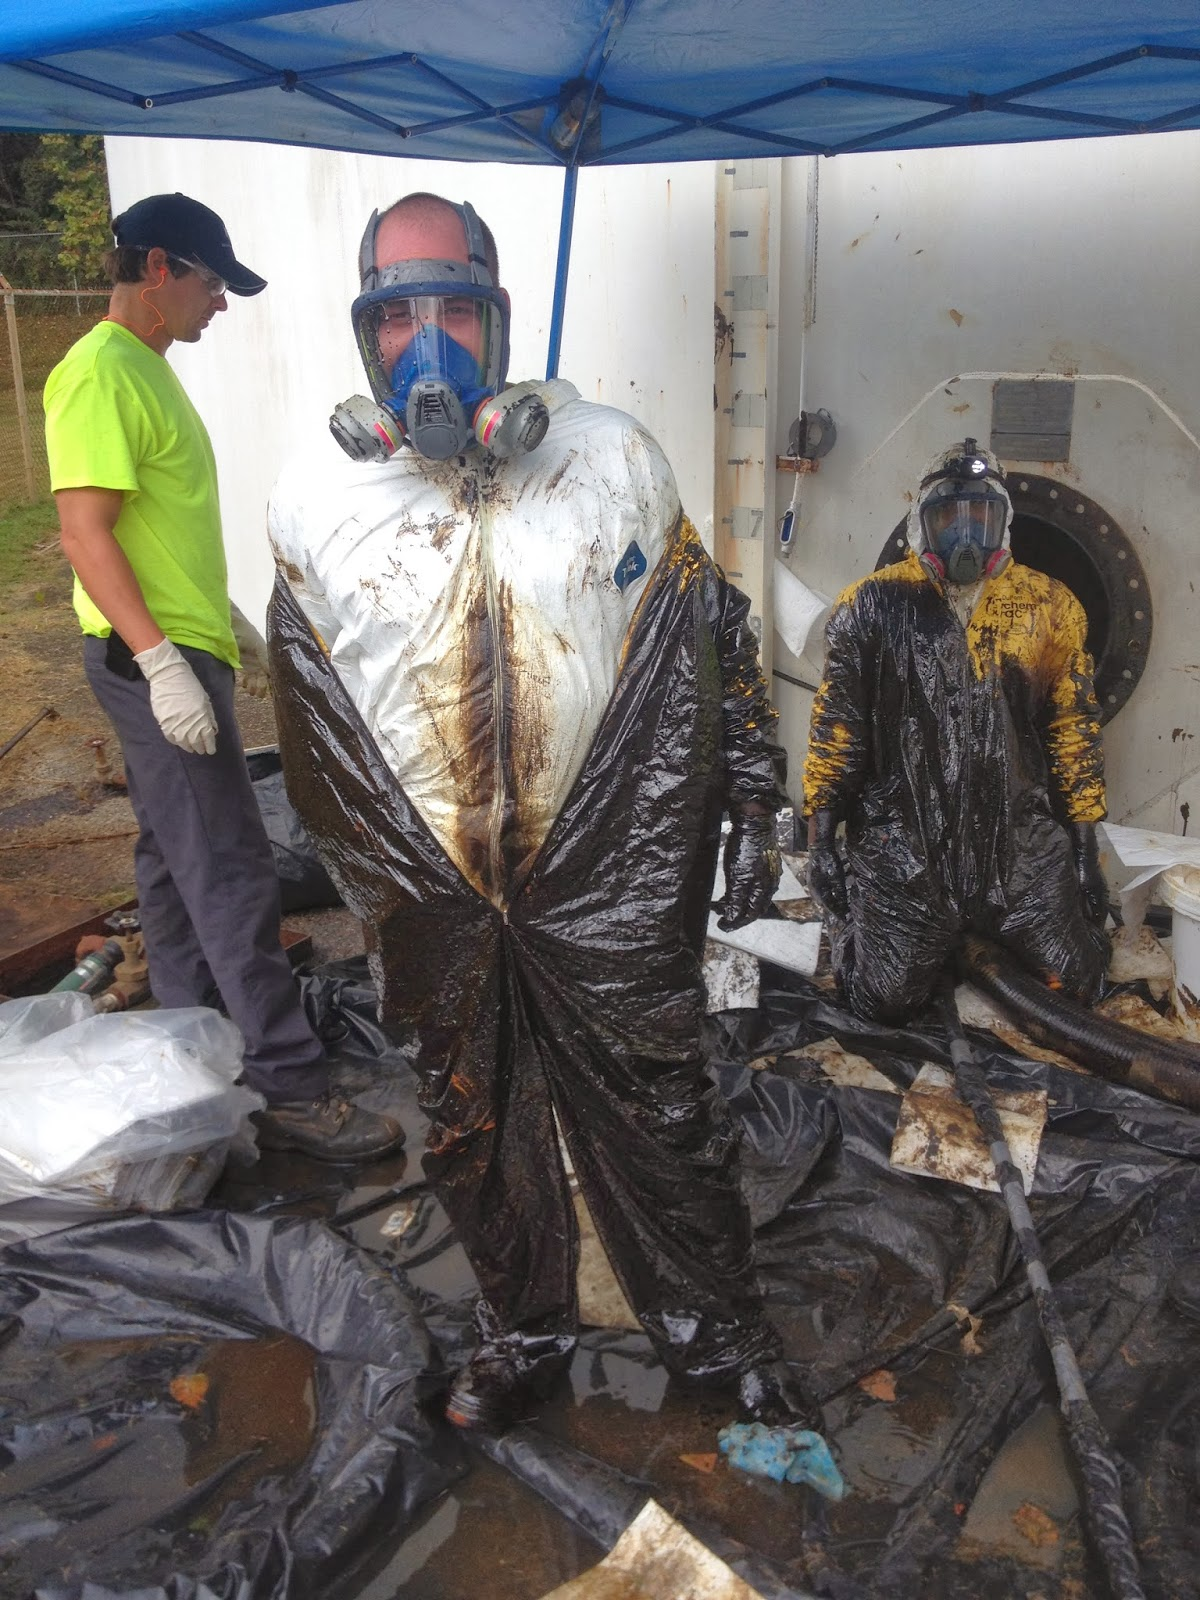 DuPont Protection's 'Dirty Work' Winners